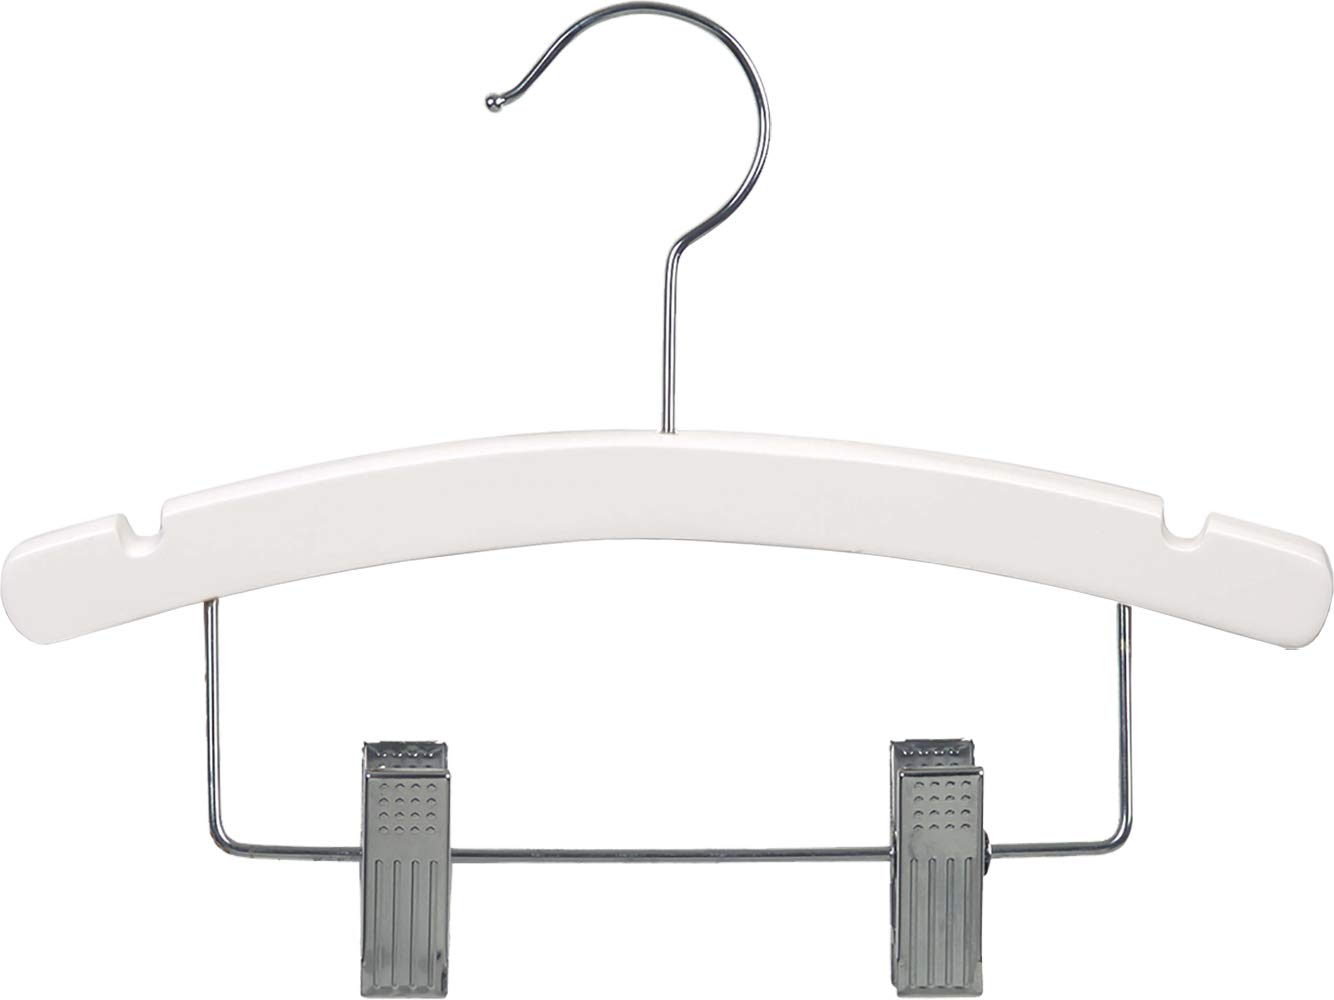 White Kids Combo Hanger, Arched 12 Inch Wood Hanger with Clips and Notches (Box of 100) by The Great American Hanger Company